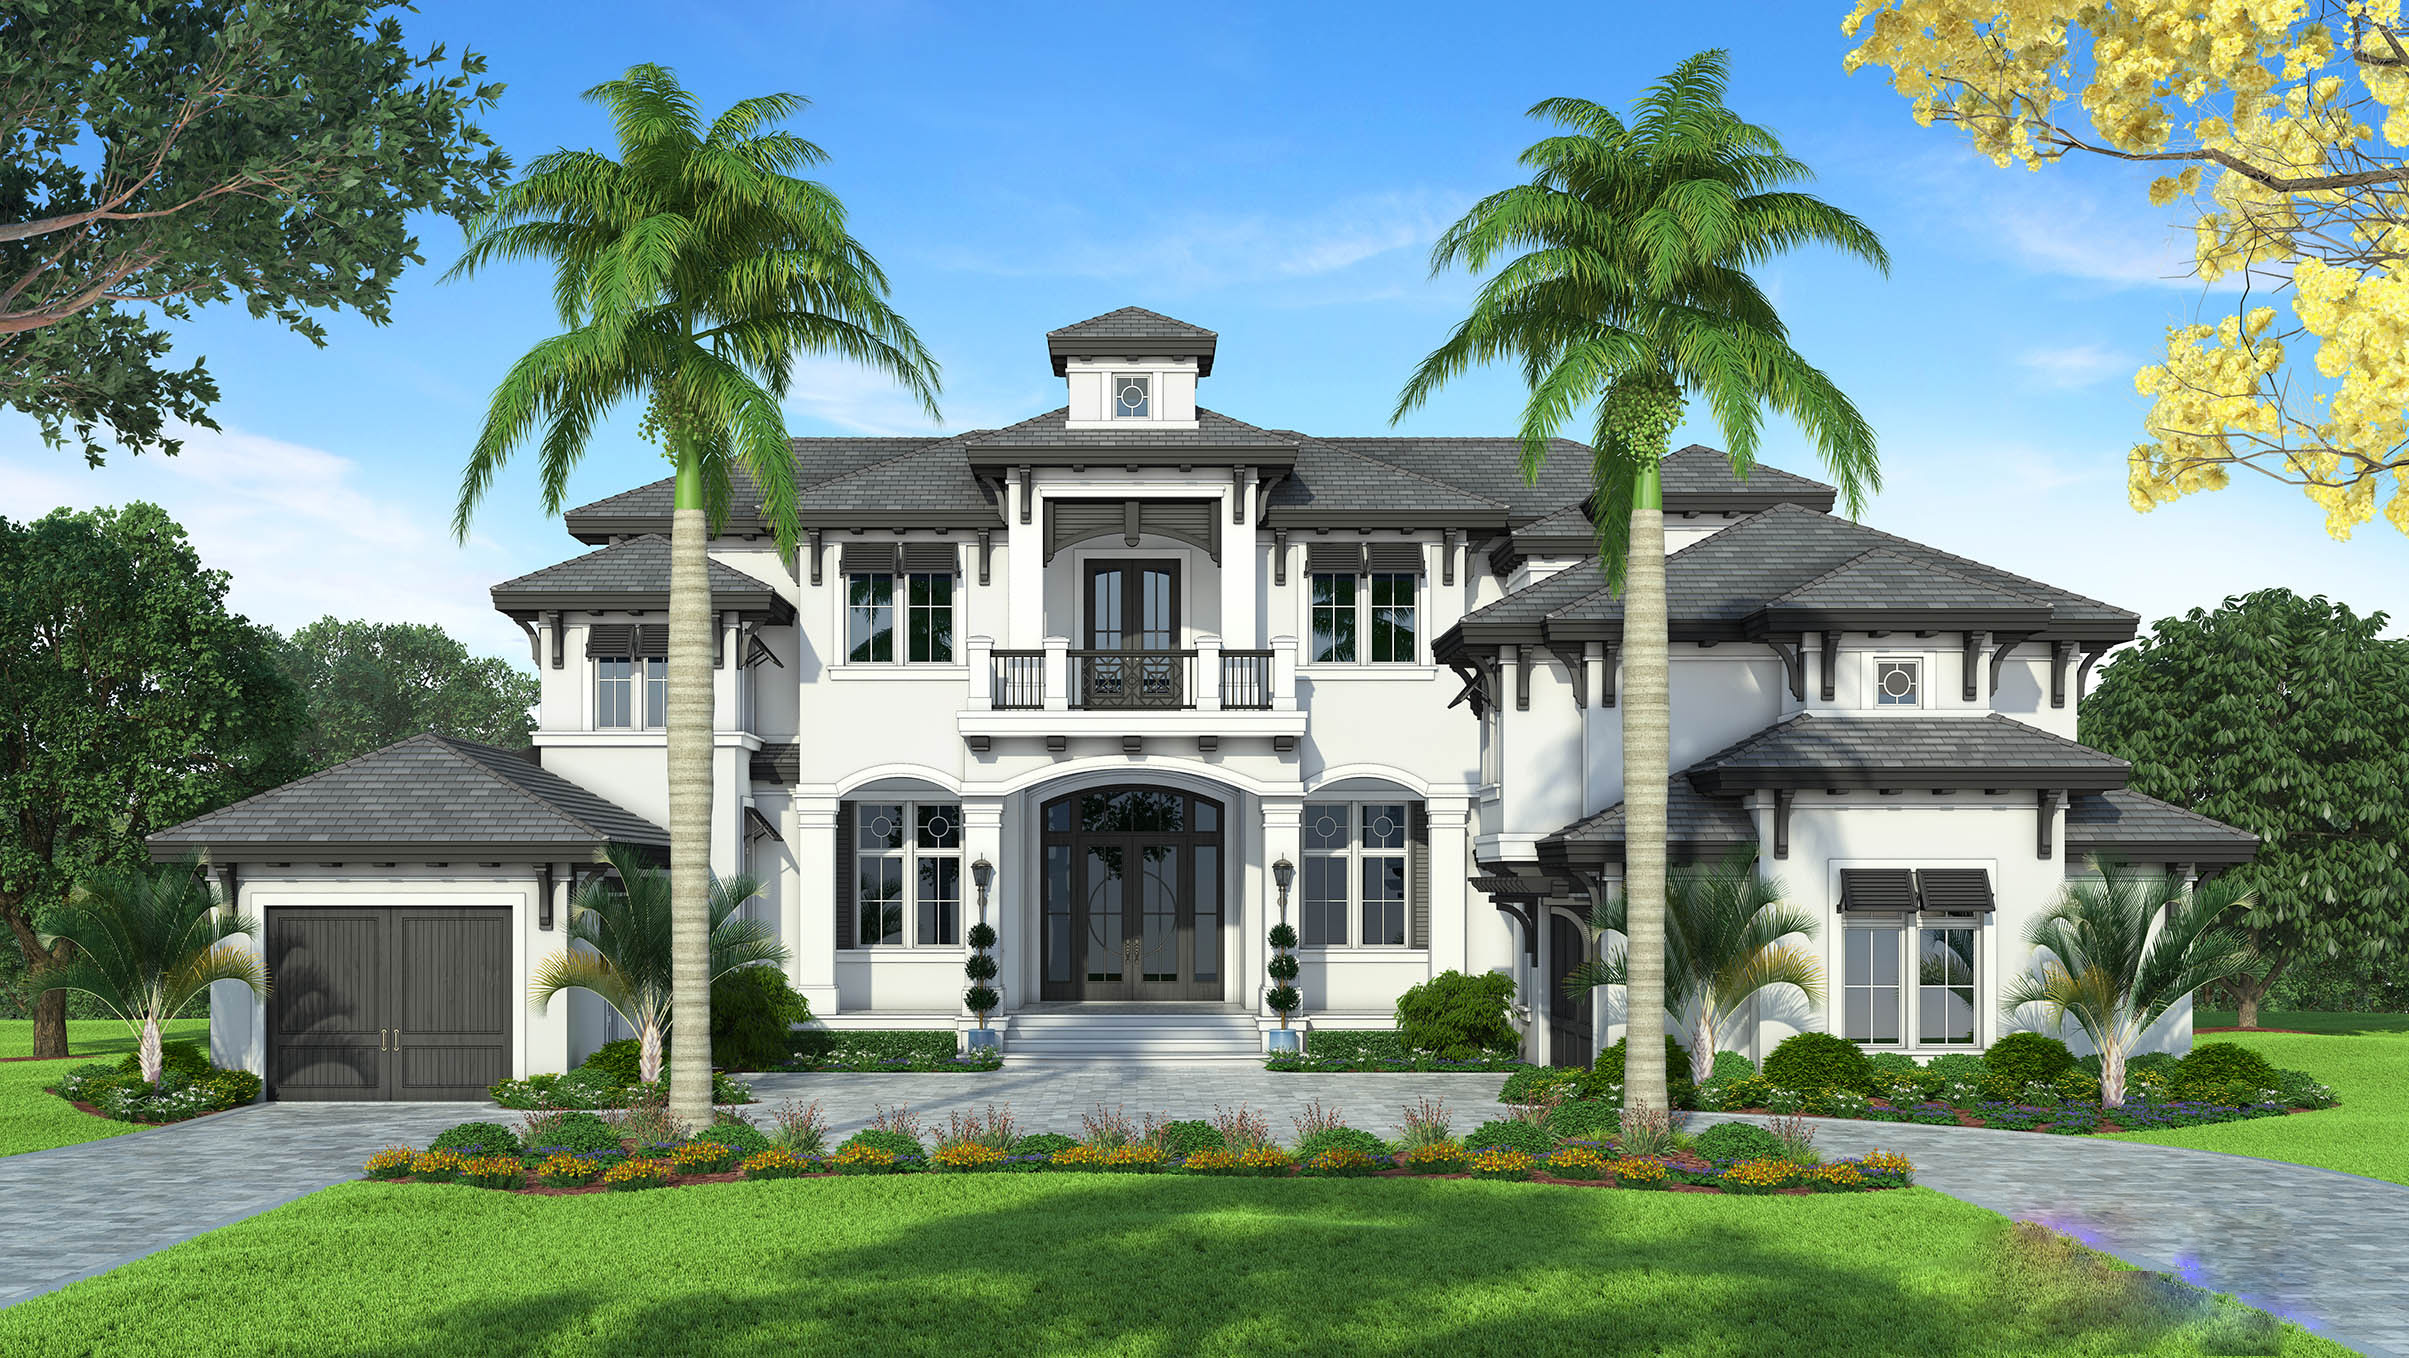 Grand florida house plan with junior master suite budron for Florida house designs